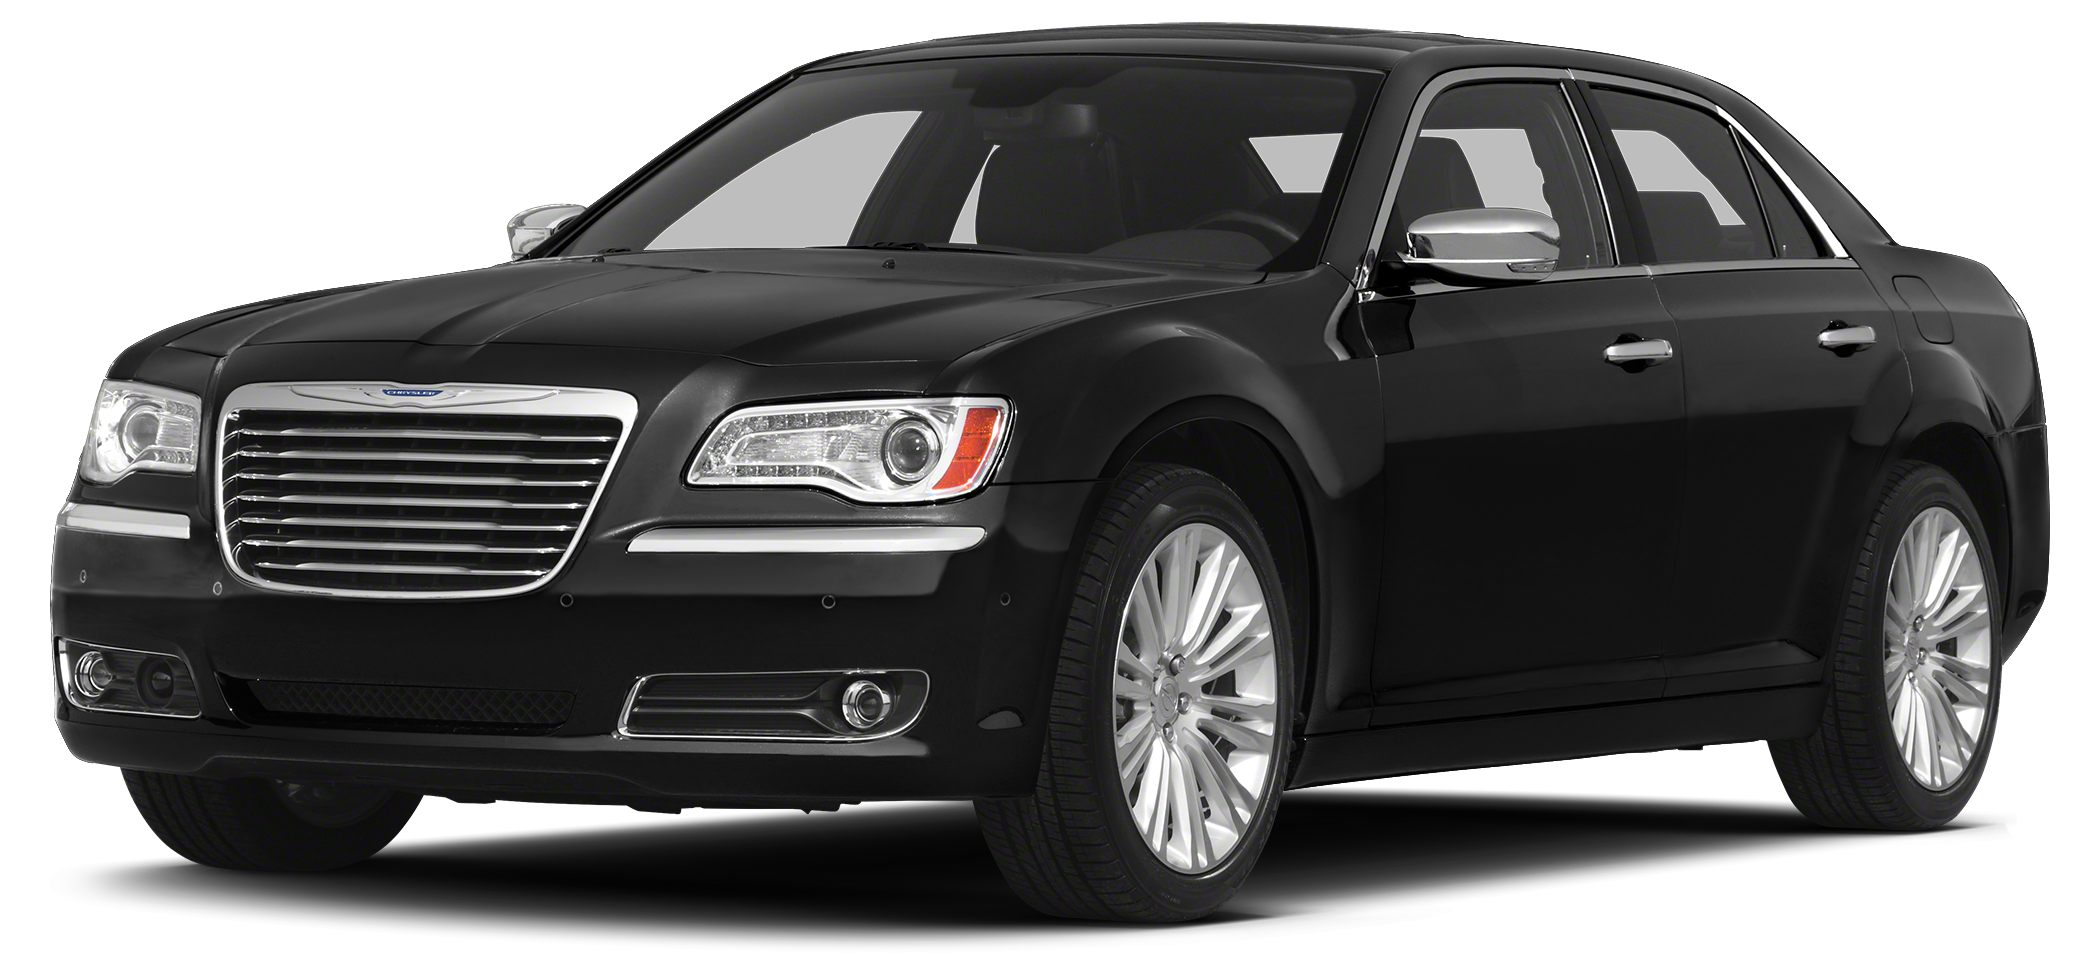 2013 Chrysler 300 Base This 2013 Chrysler 300 4dr features a 36L V6 Cylinder 6cyl Gasoline engine